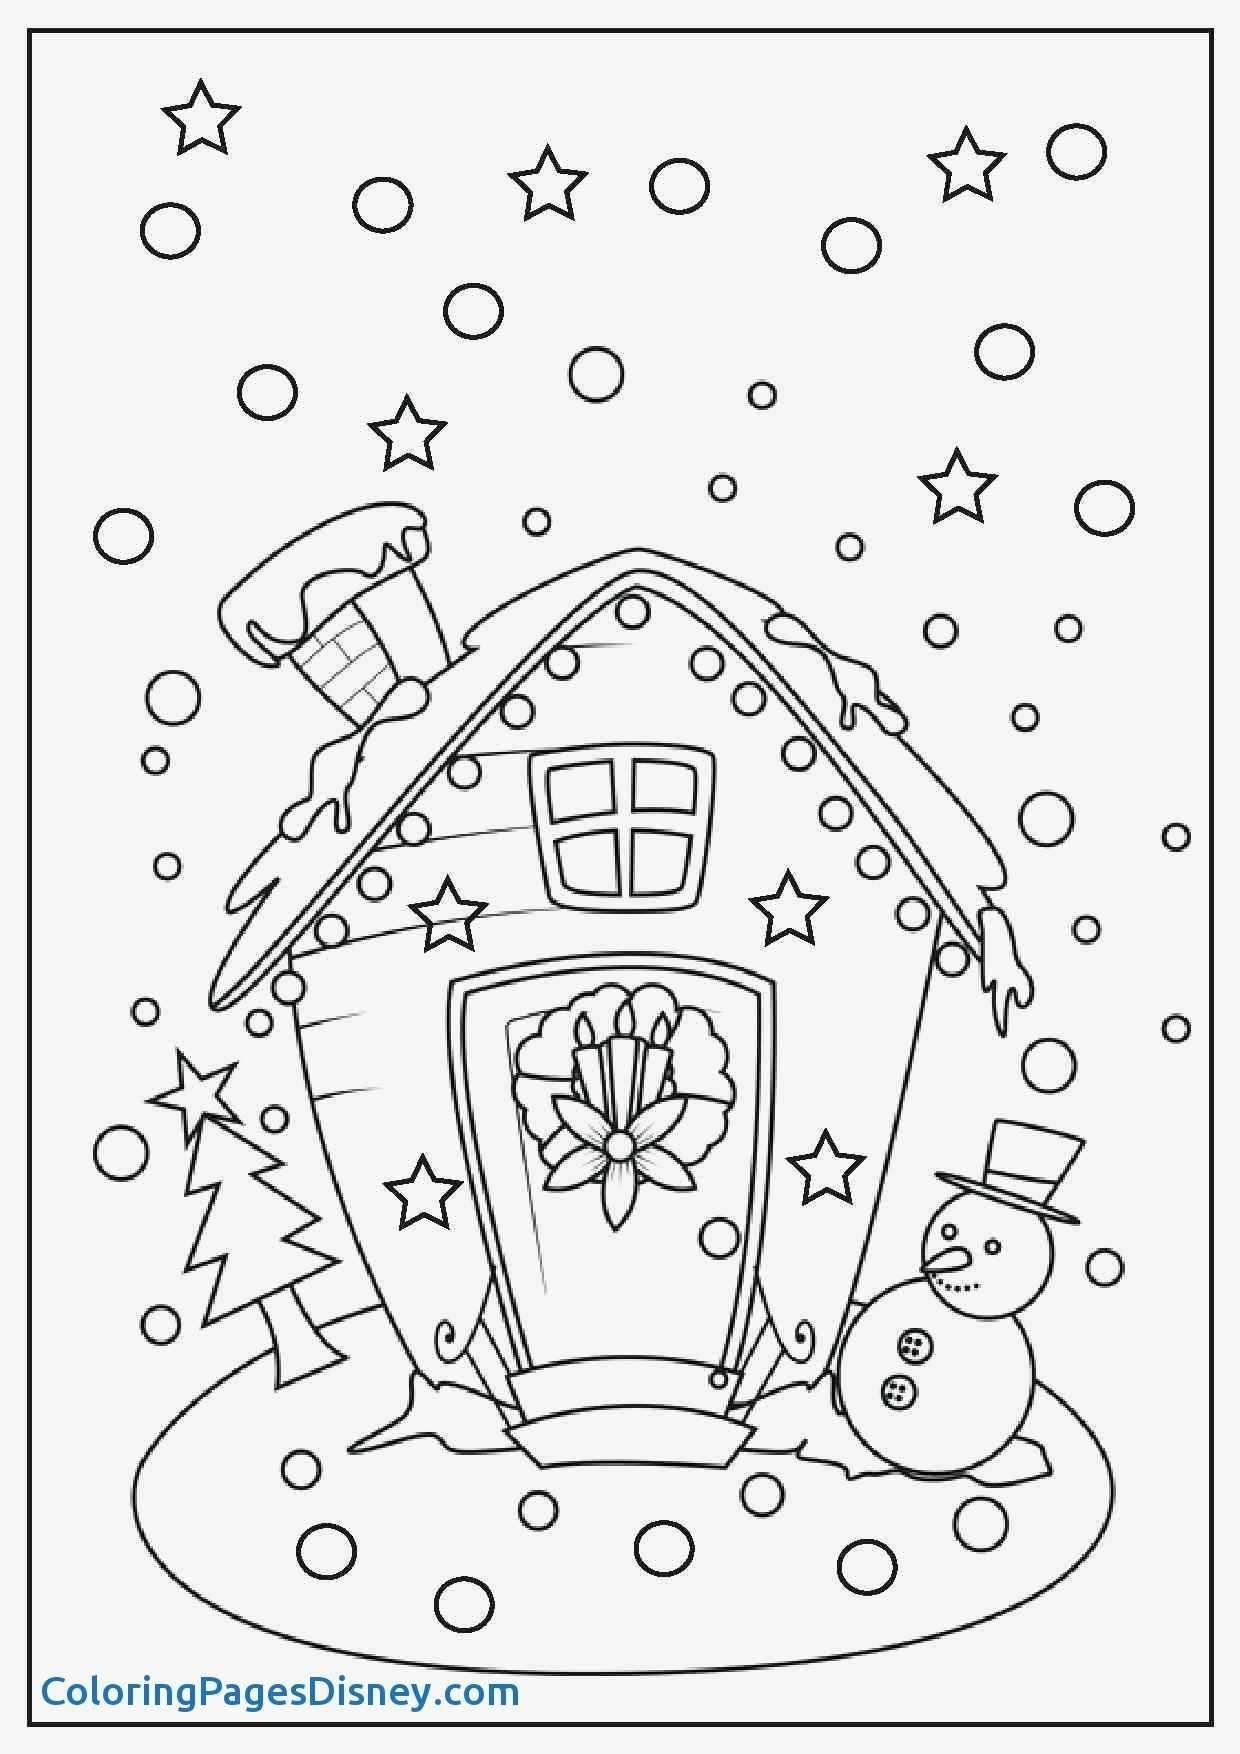 graphic about Valentines Day Coloring Pages Free Printable named 23+ Exceptional Image of Valentines Working day Coloring Webpages